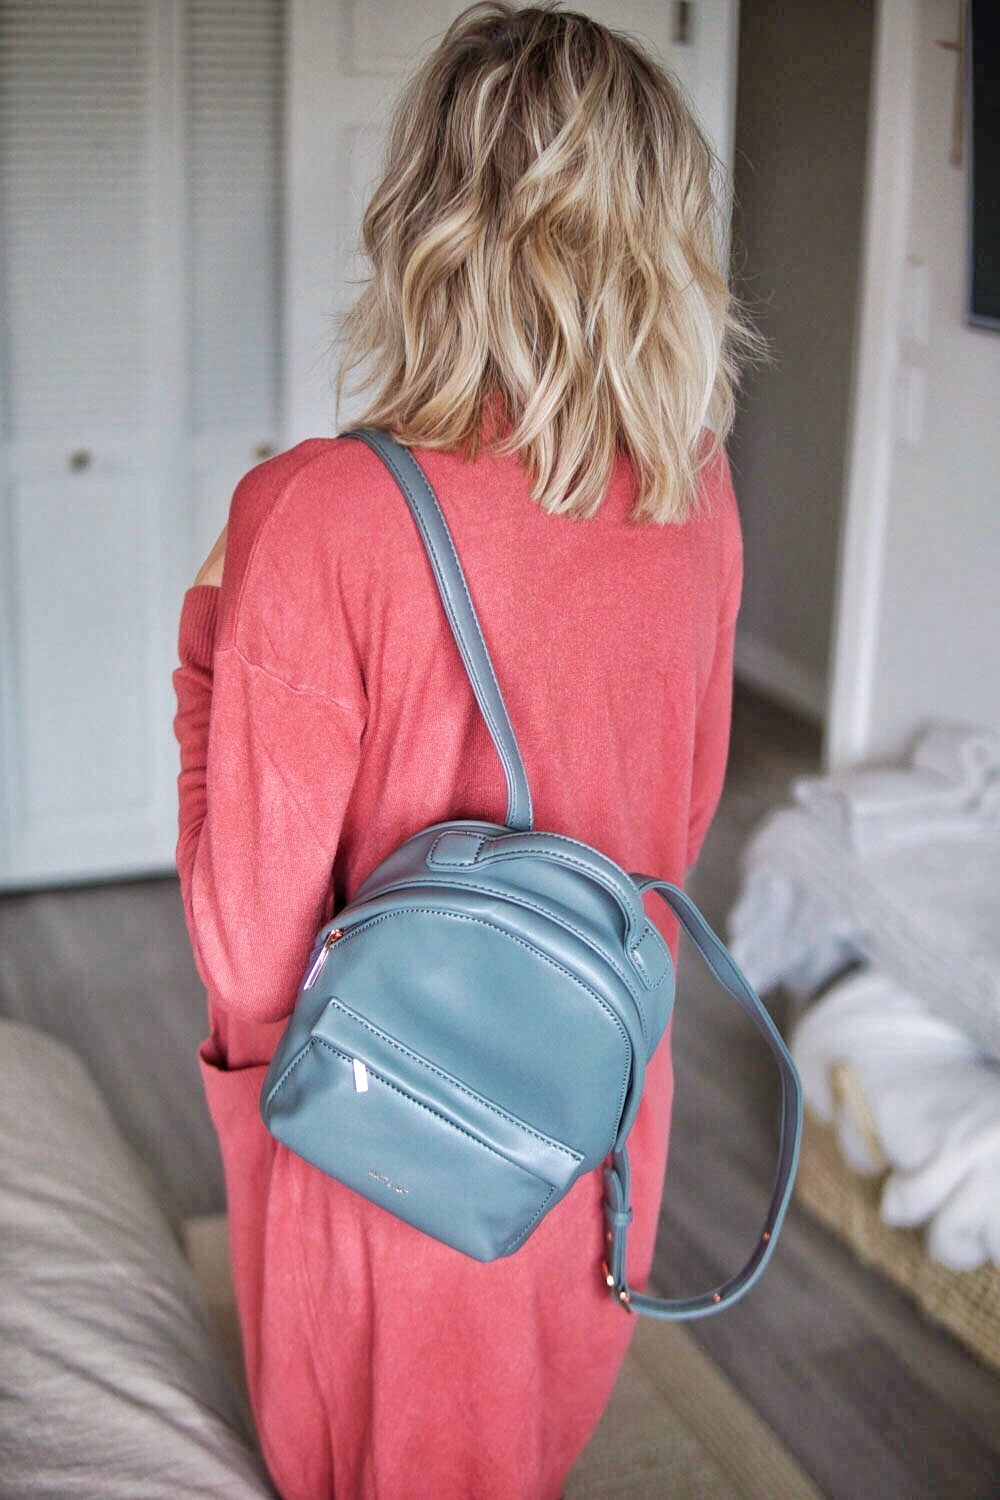 Matt + Nat Vegan Leather Mini Backpack